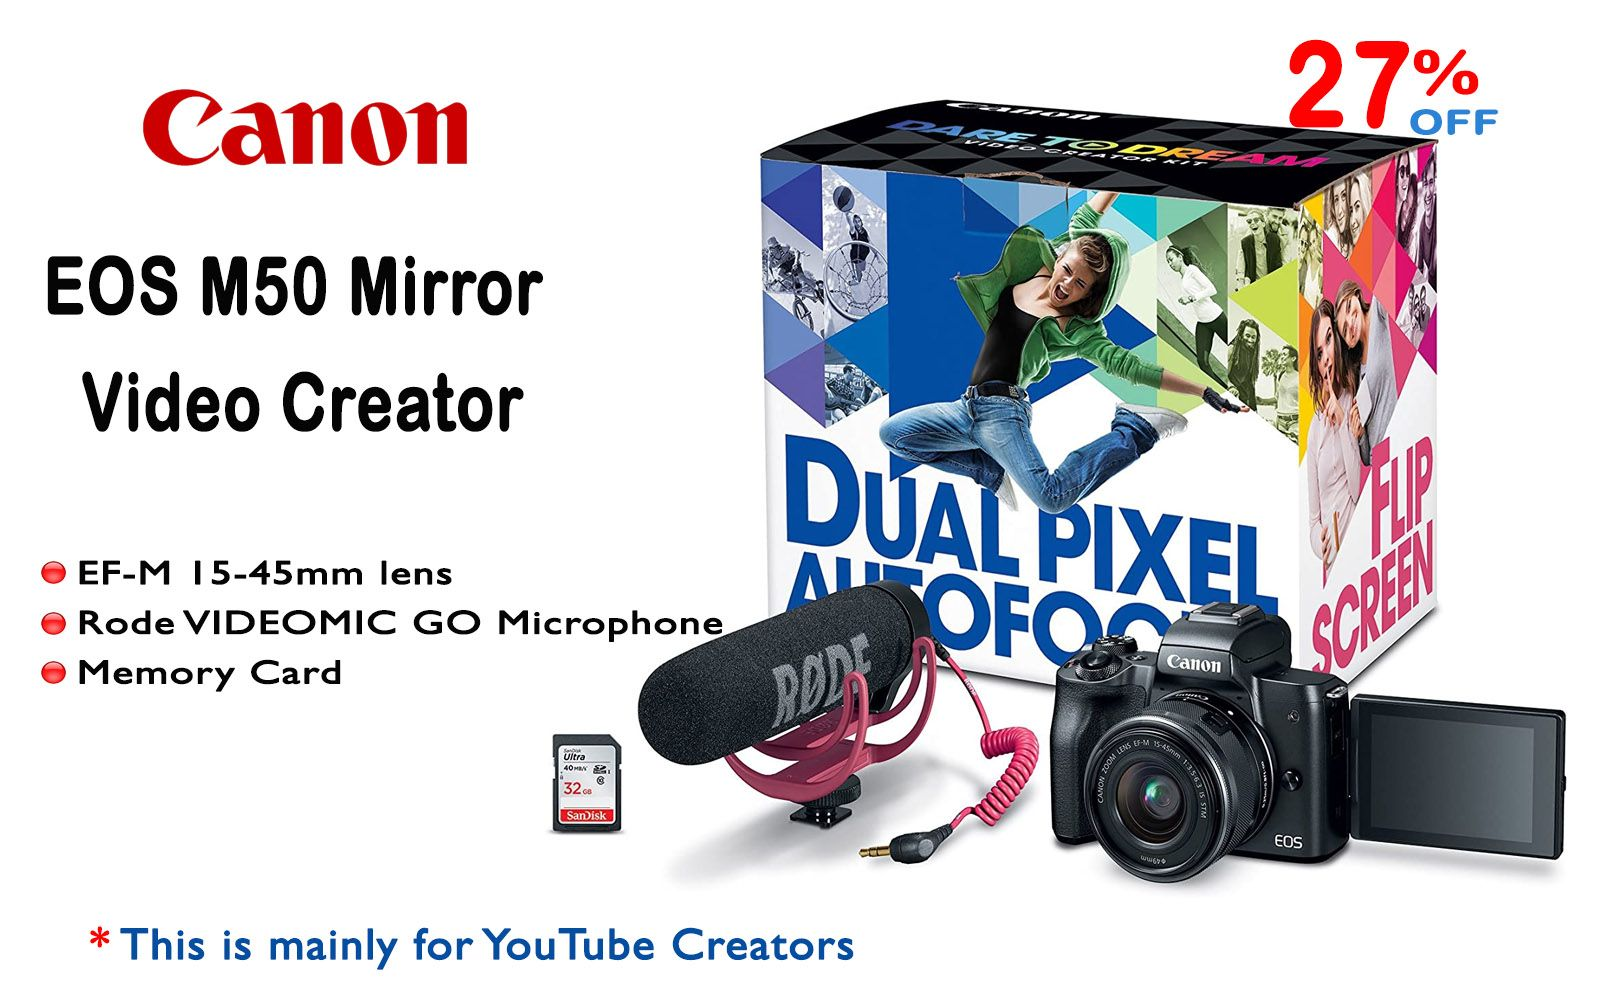 Canon Eos M50 Mirrorless Video Creator Kit For Youtube Creators Photography Basics Memory Cards Video